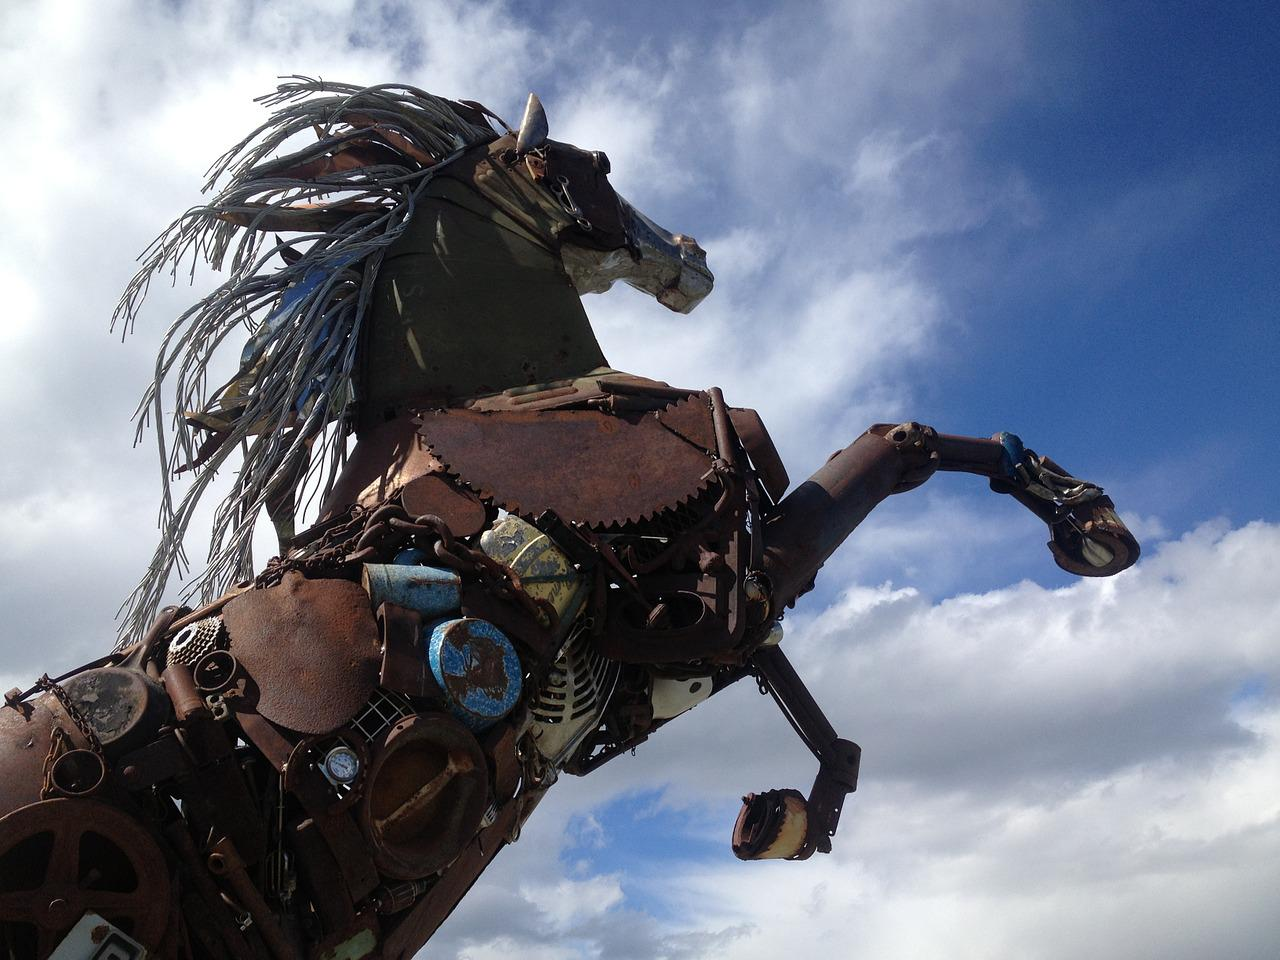 Iron Horse Scrap Metal Art Free Photo On Pixabay